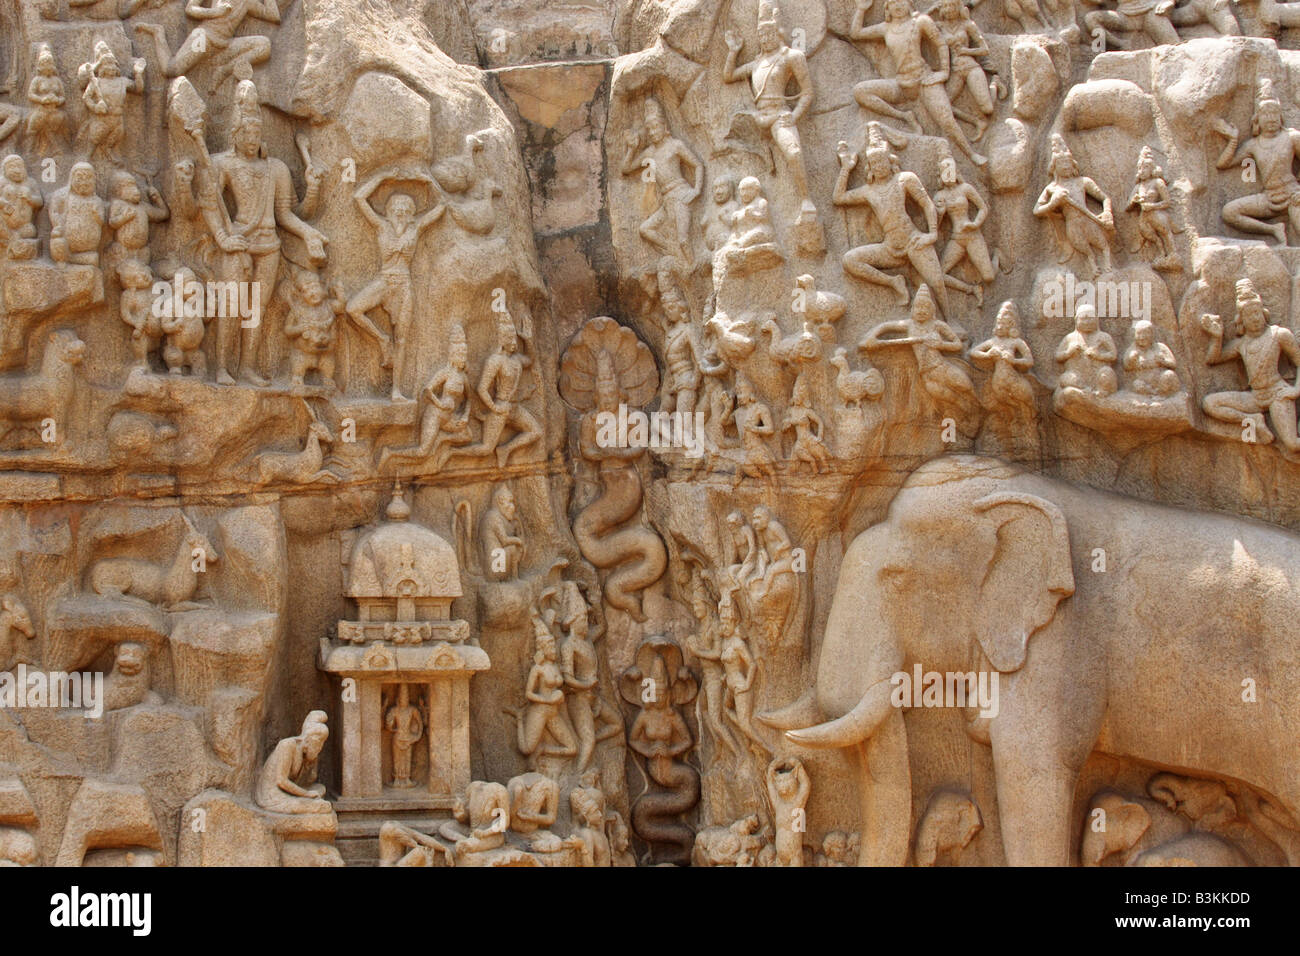 Elephant and people carved in stone wall hindu temple